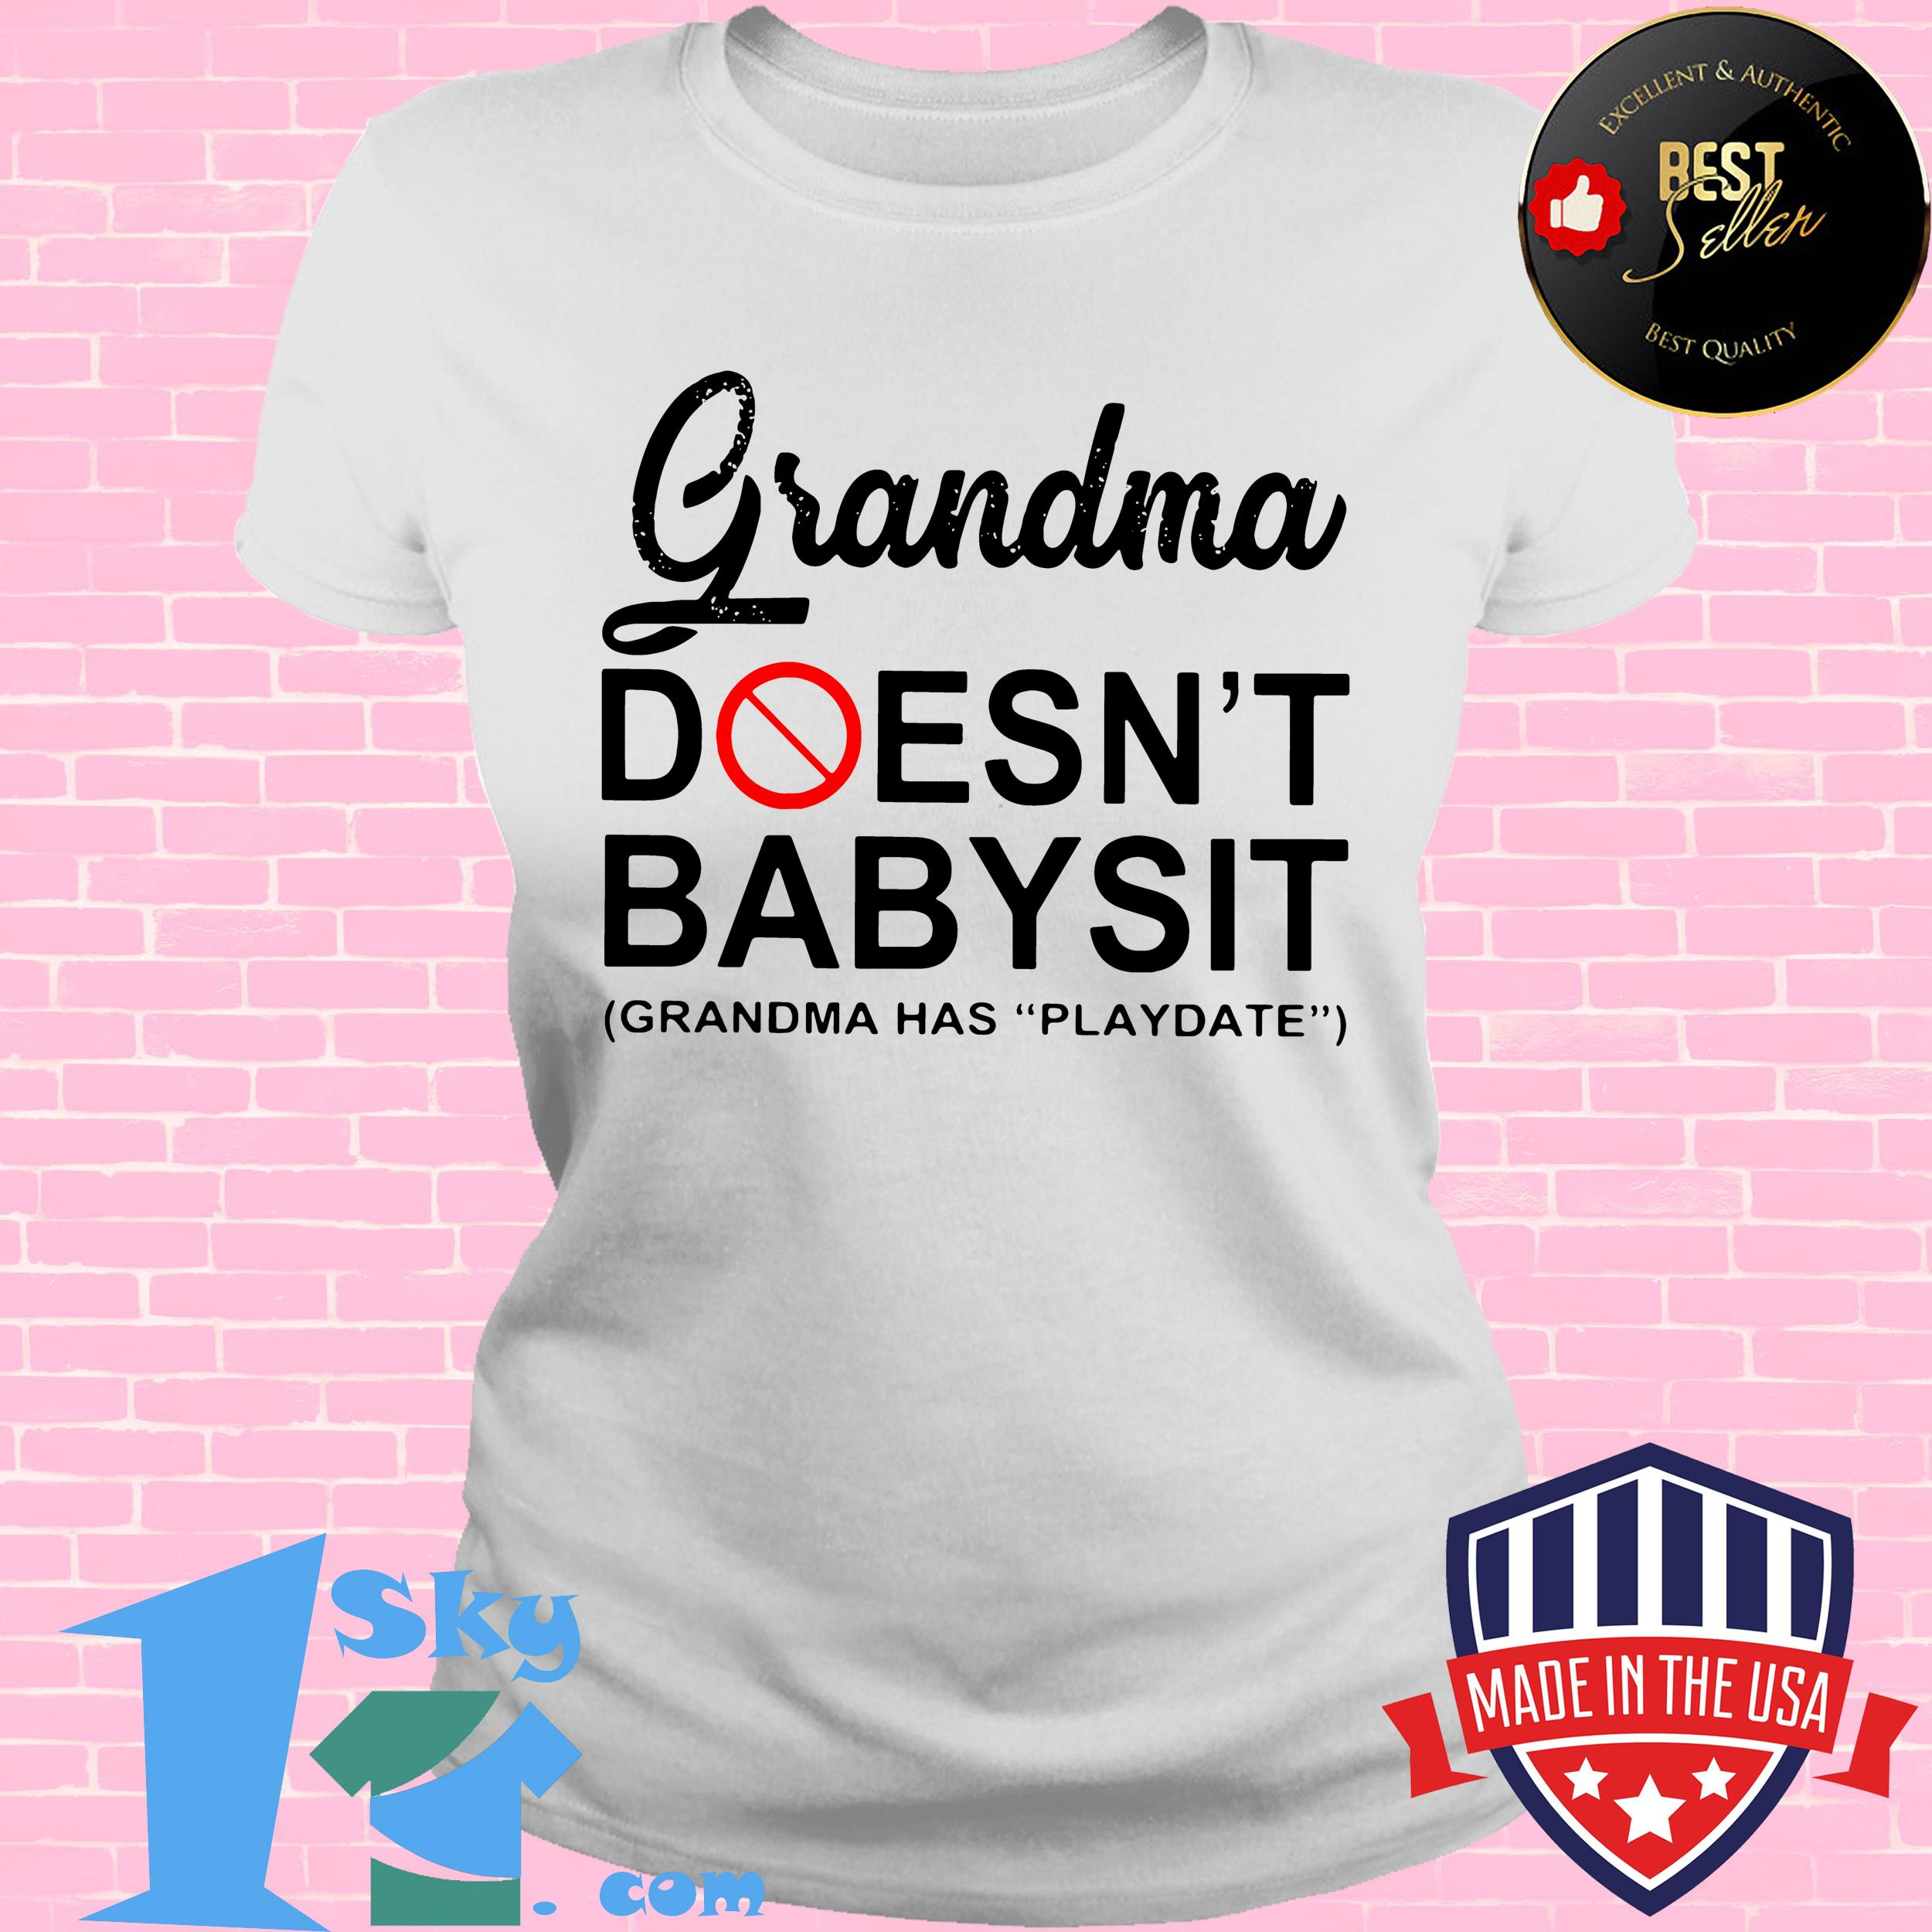 grandma doesnt babysit grandma has playdate ladies tee - Grandma Doesn't Babysit Grandma Has Playdate Shirt